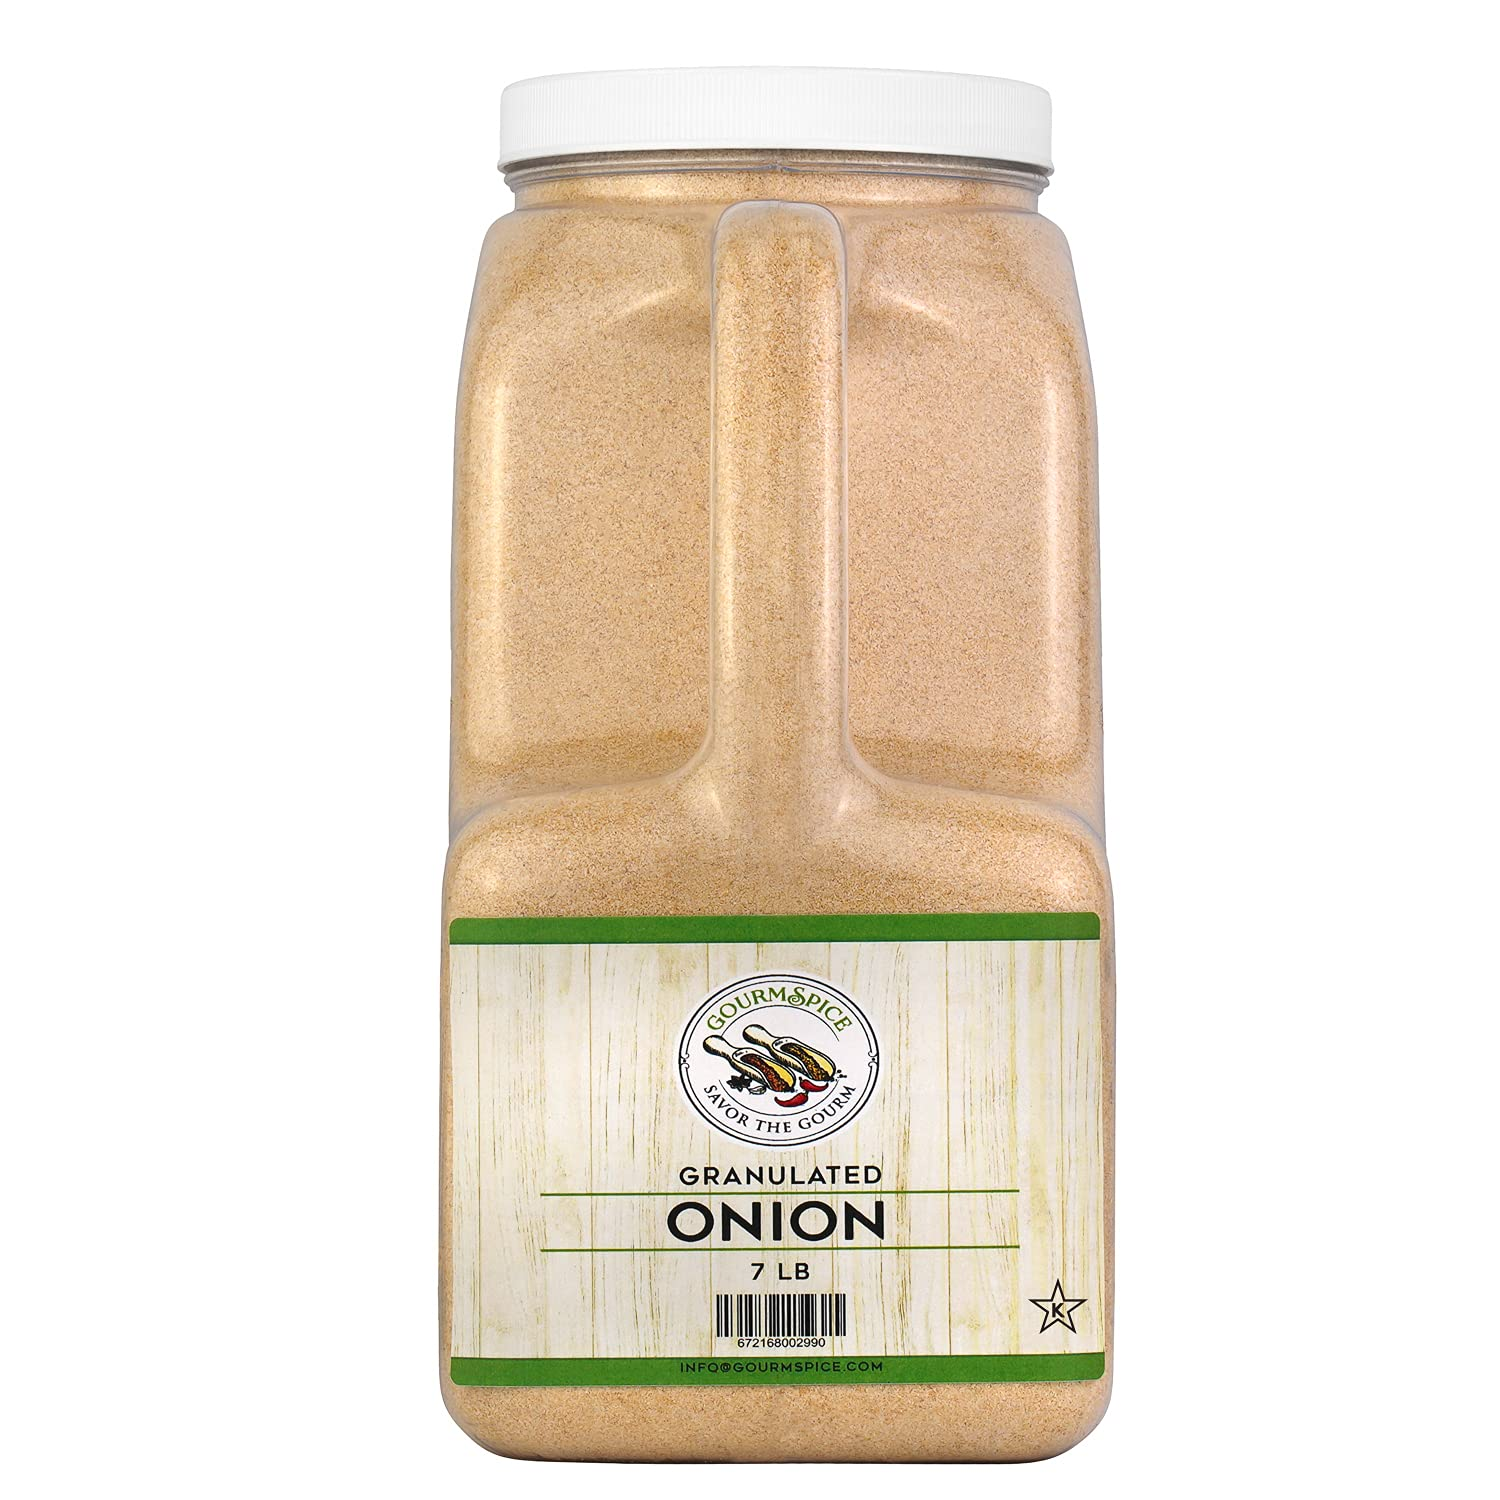 Gourmspice Quality Granulated Onion | High Grade Fresh Taste | Kosher Chef Spices and seasoning (Granulated Onion 7lb, Chef's Size)